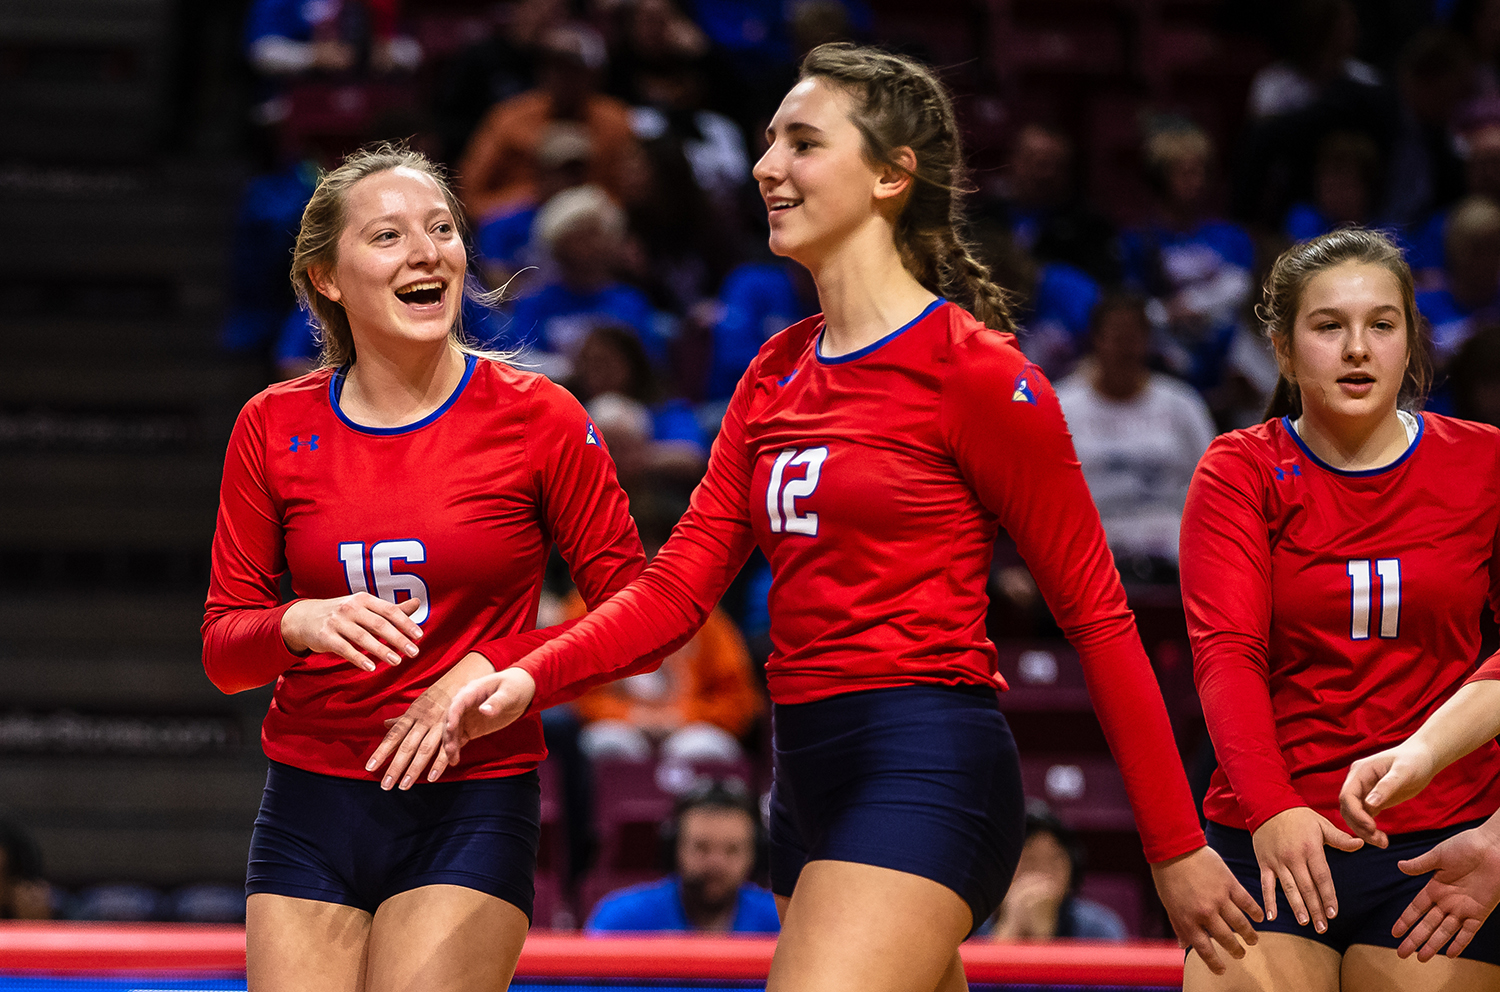 Pleasant Plains' Macy Kanllakan (16) and Pleasant Plains' Maddie Reiser (12) get fired up after a time out as the Cardinals take on Champaign St. Thomas More during the Class 2A IHSA Volleyball State Final Tournament semifinals at Redbird Arena, Friday, Nov. 9, 2018, in Normal, Ill. [Justin L. Fowler/The State Journal-Register]